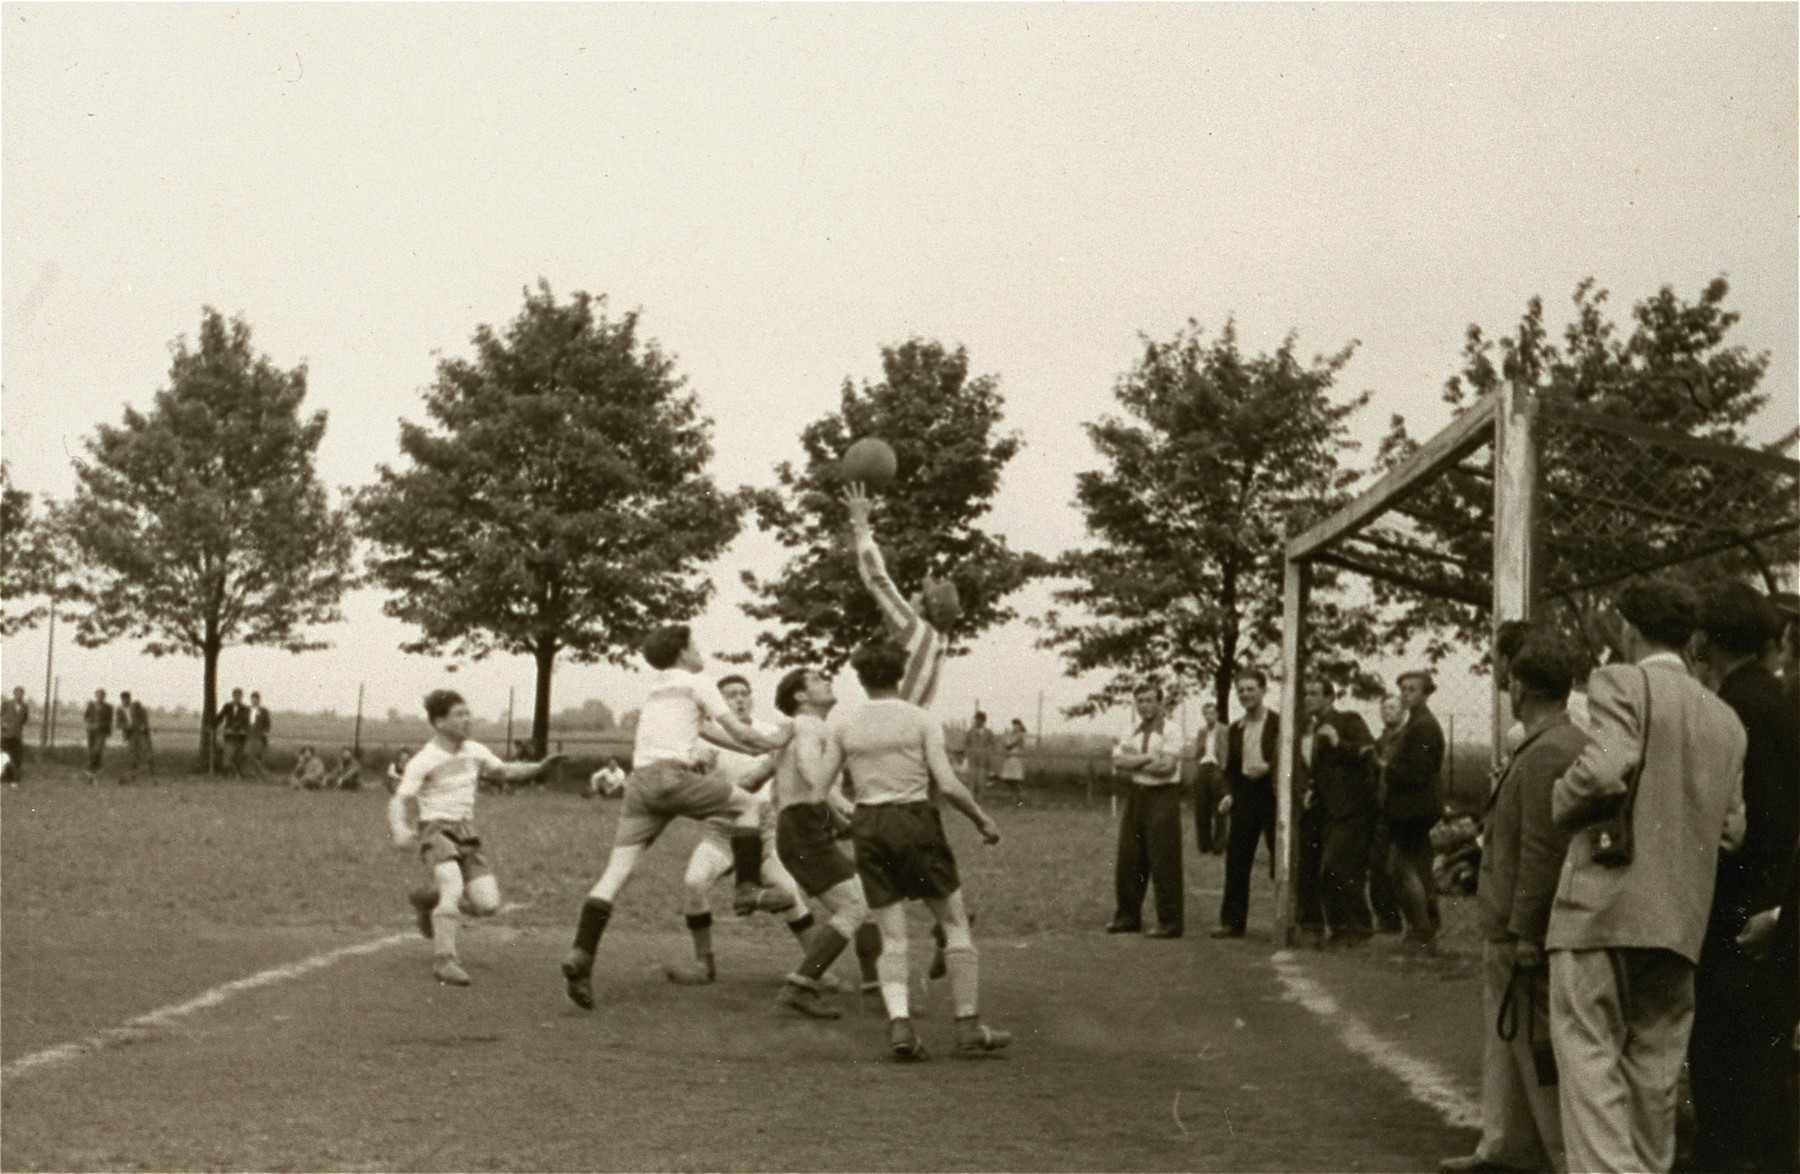 Spectators watch a goalie block a goal during a soccer match at the Zeilsheim displaced persons' camp.